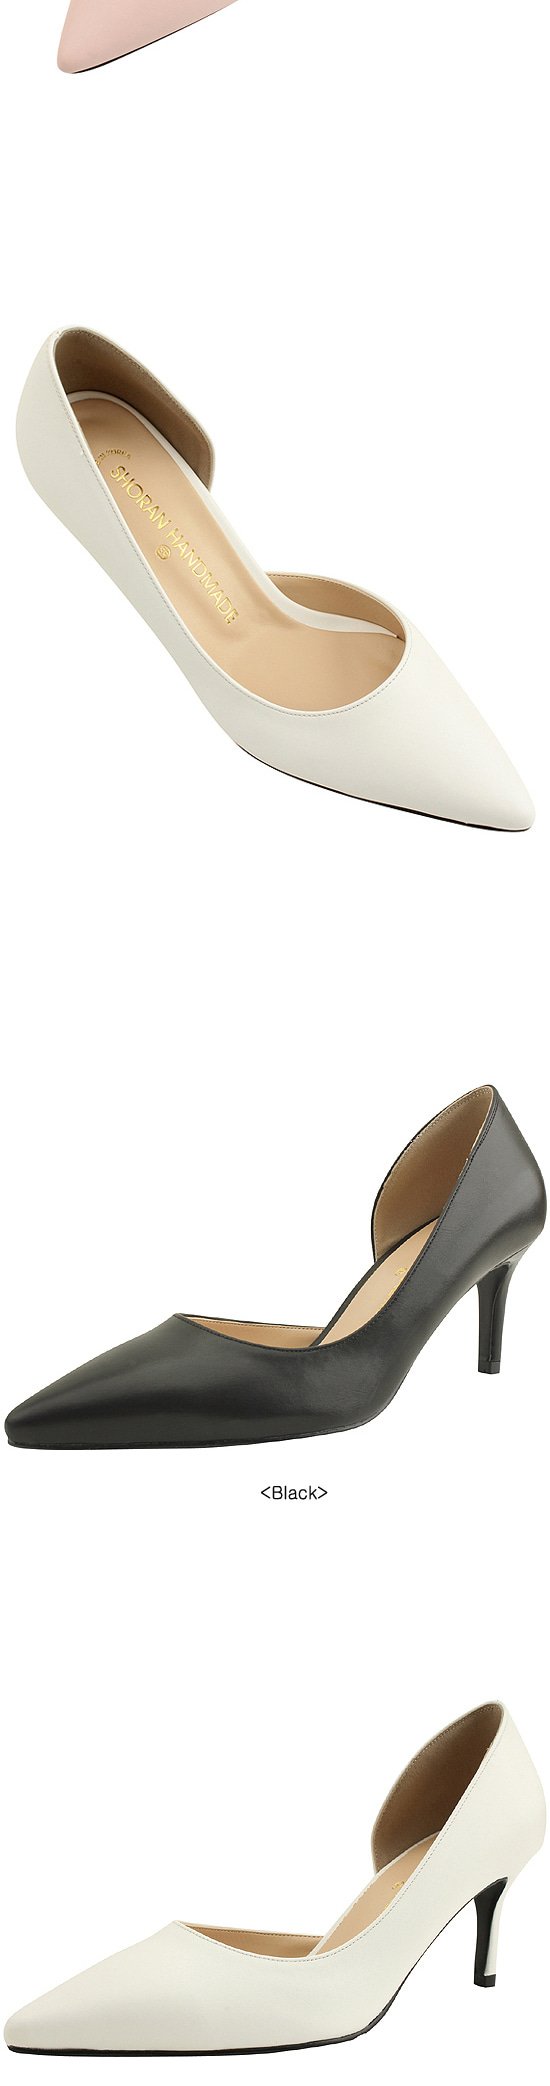 Inside Open Stiletto Heel 7cm White